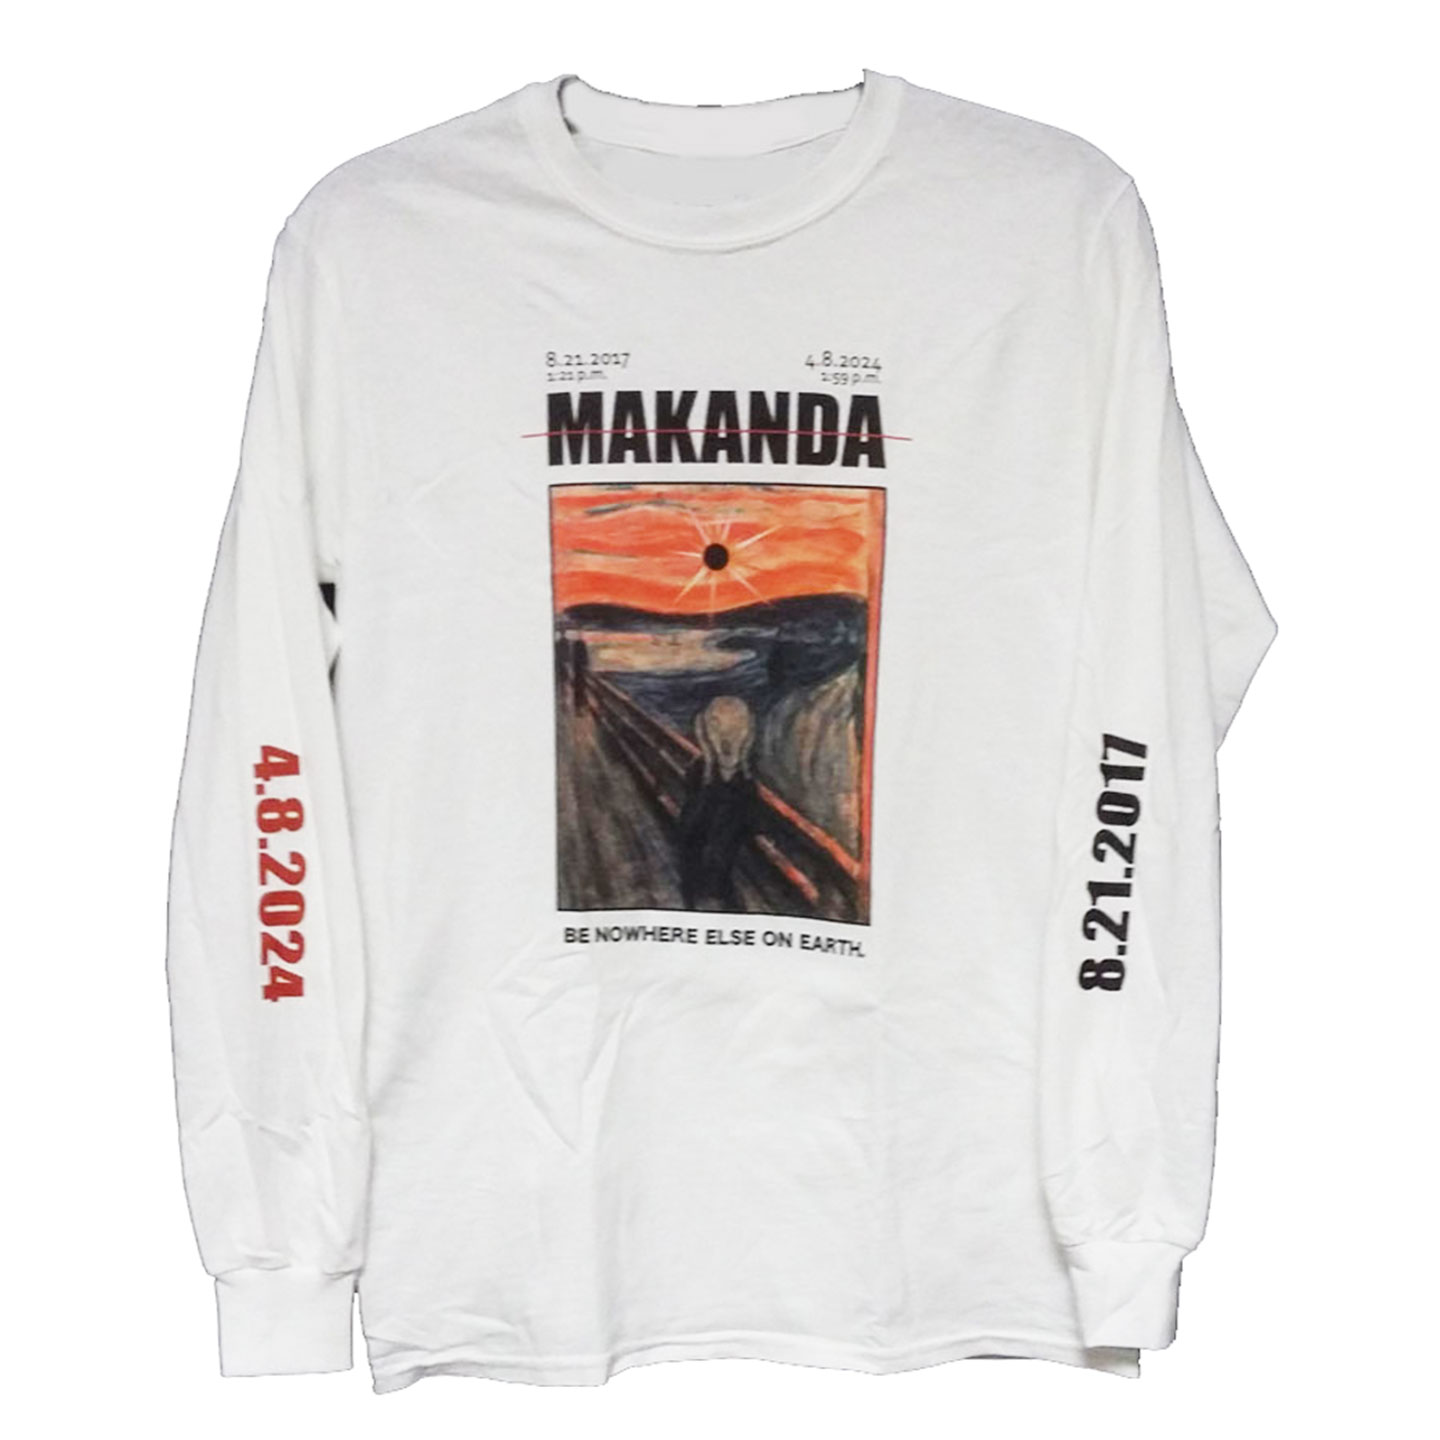 Image for the 710 BRANDED MAKANDA ECLIPSE WHITE LONG SLEEVE T-SHIRT product